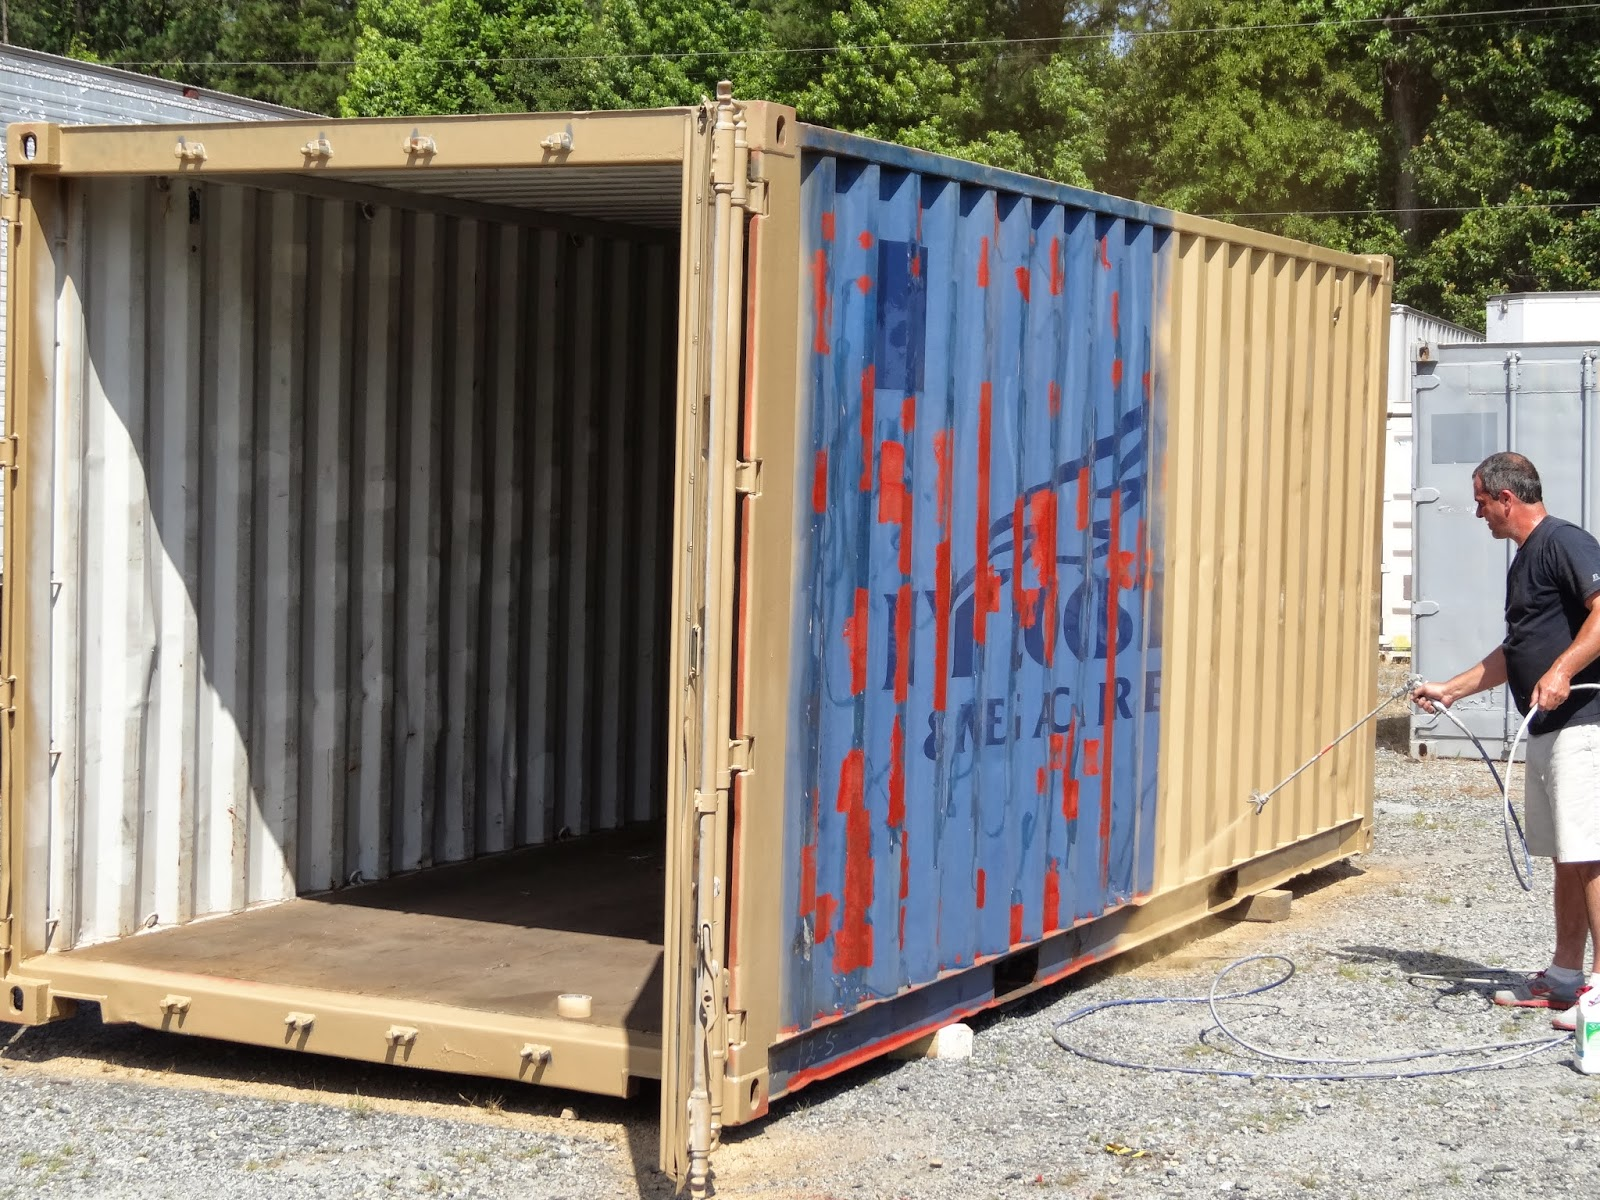 Used 20u0027 Container Cleaned, Spot Primed And Ready To Paint